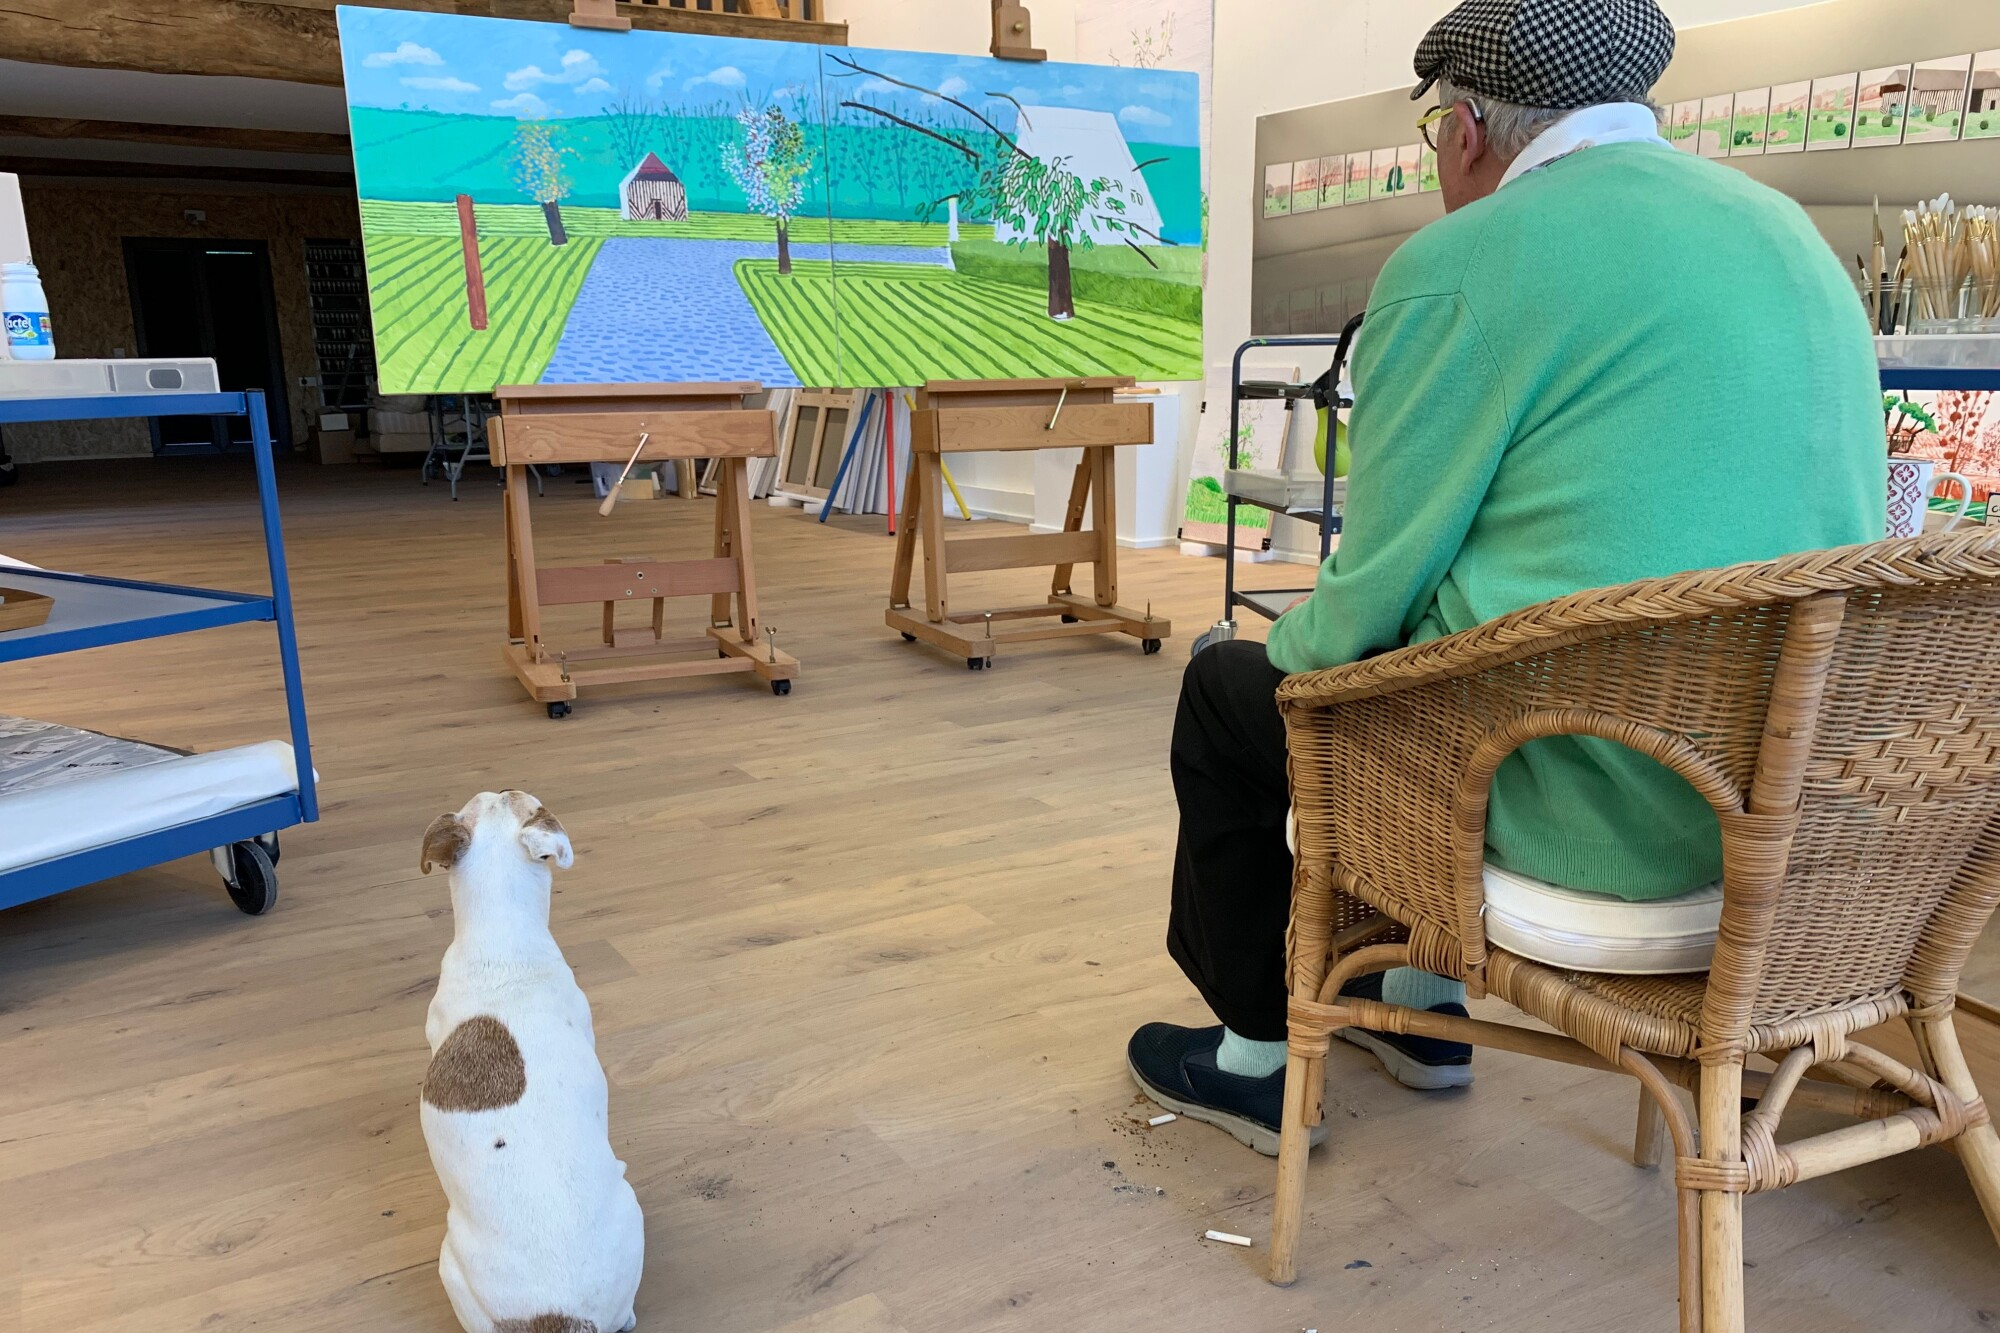 David Hockney and Ruby in the Normandy studio, May 25, 2020.